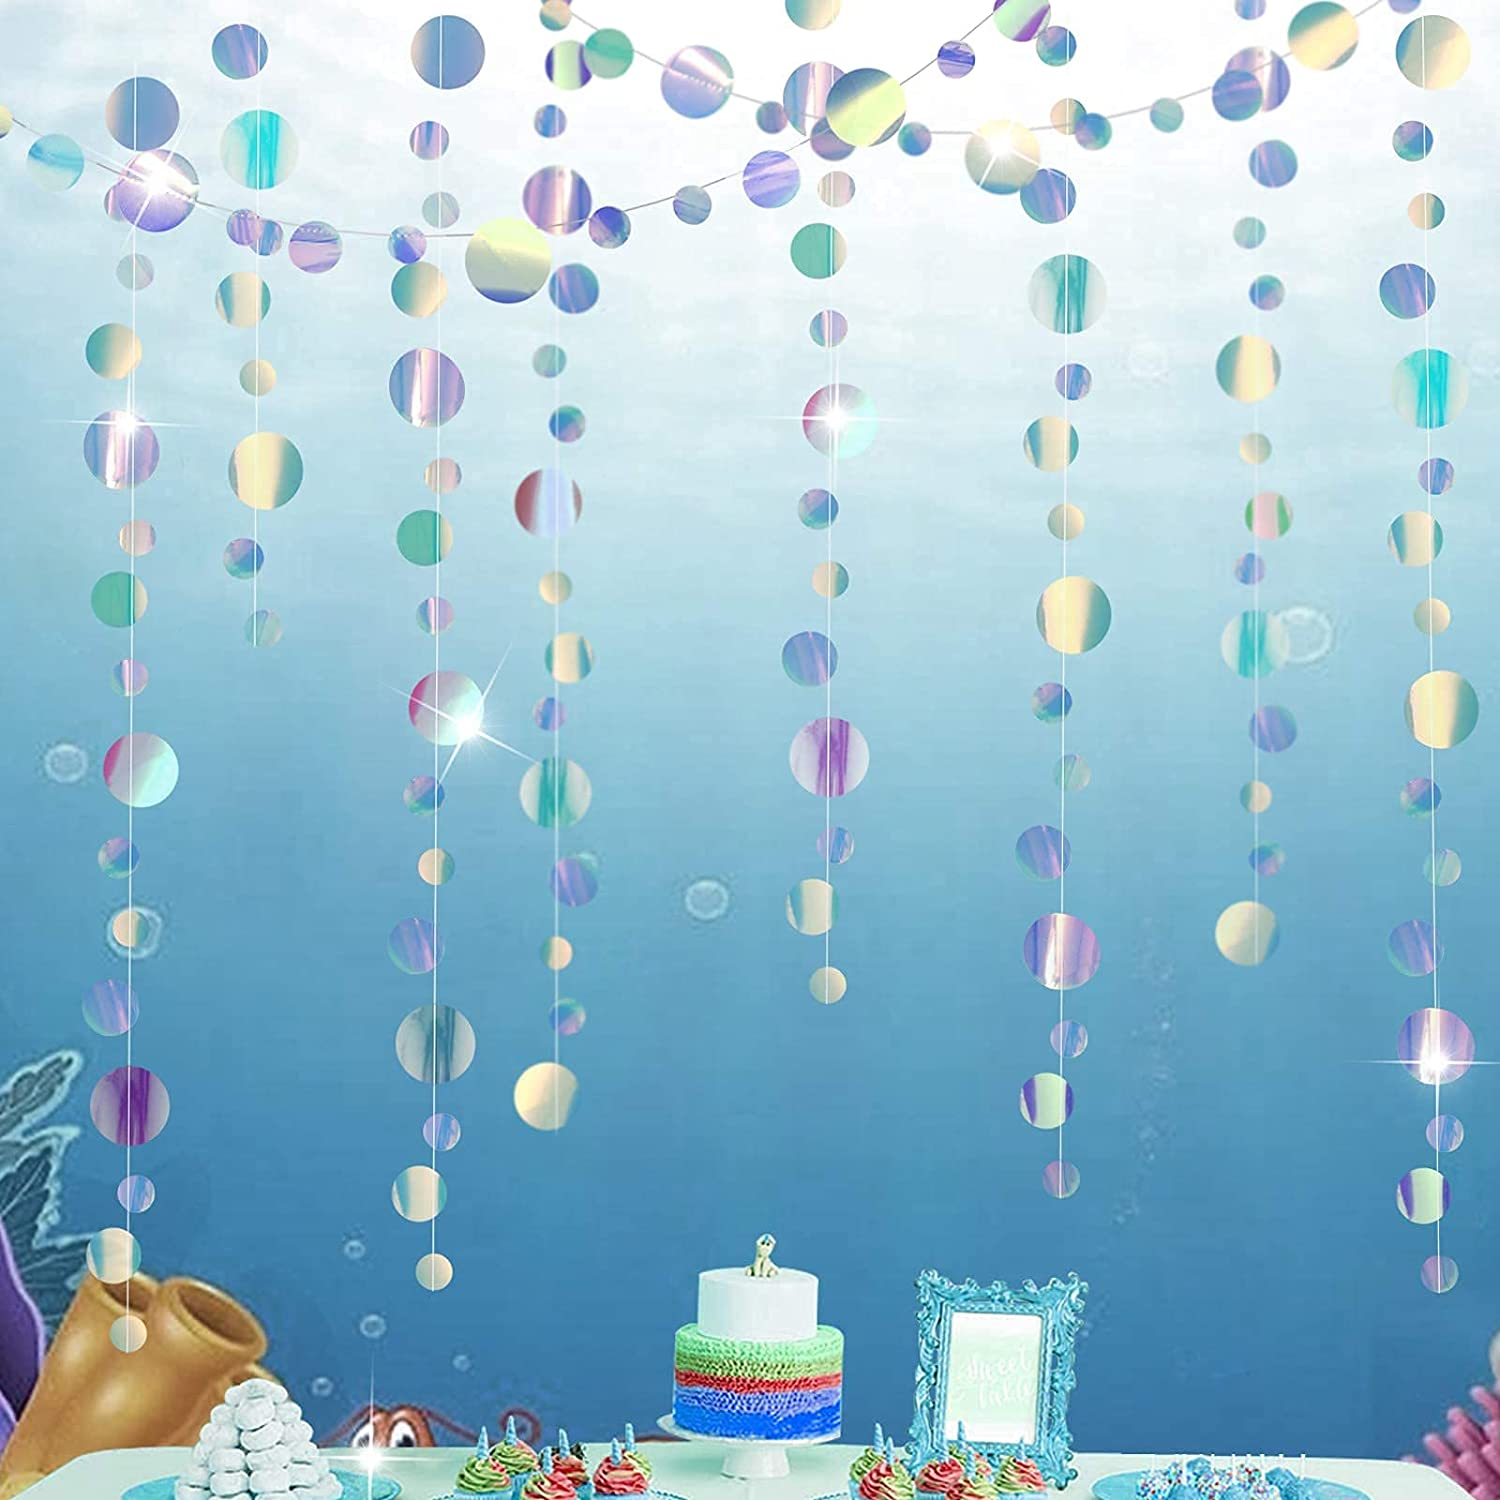 Under The Sea Circle Garland Holographic Bubble Garlands Iridescent Party Supplies Semi See-Through Hanging Bubbles Backdrop Streamer Decor Ocean Coral Baby Shower Little Mermaid Birthday Decoration